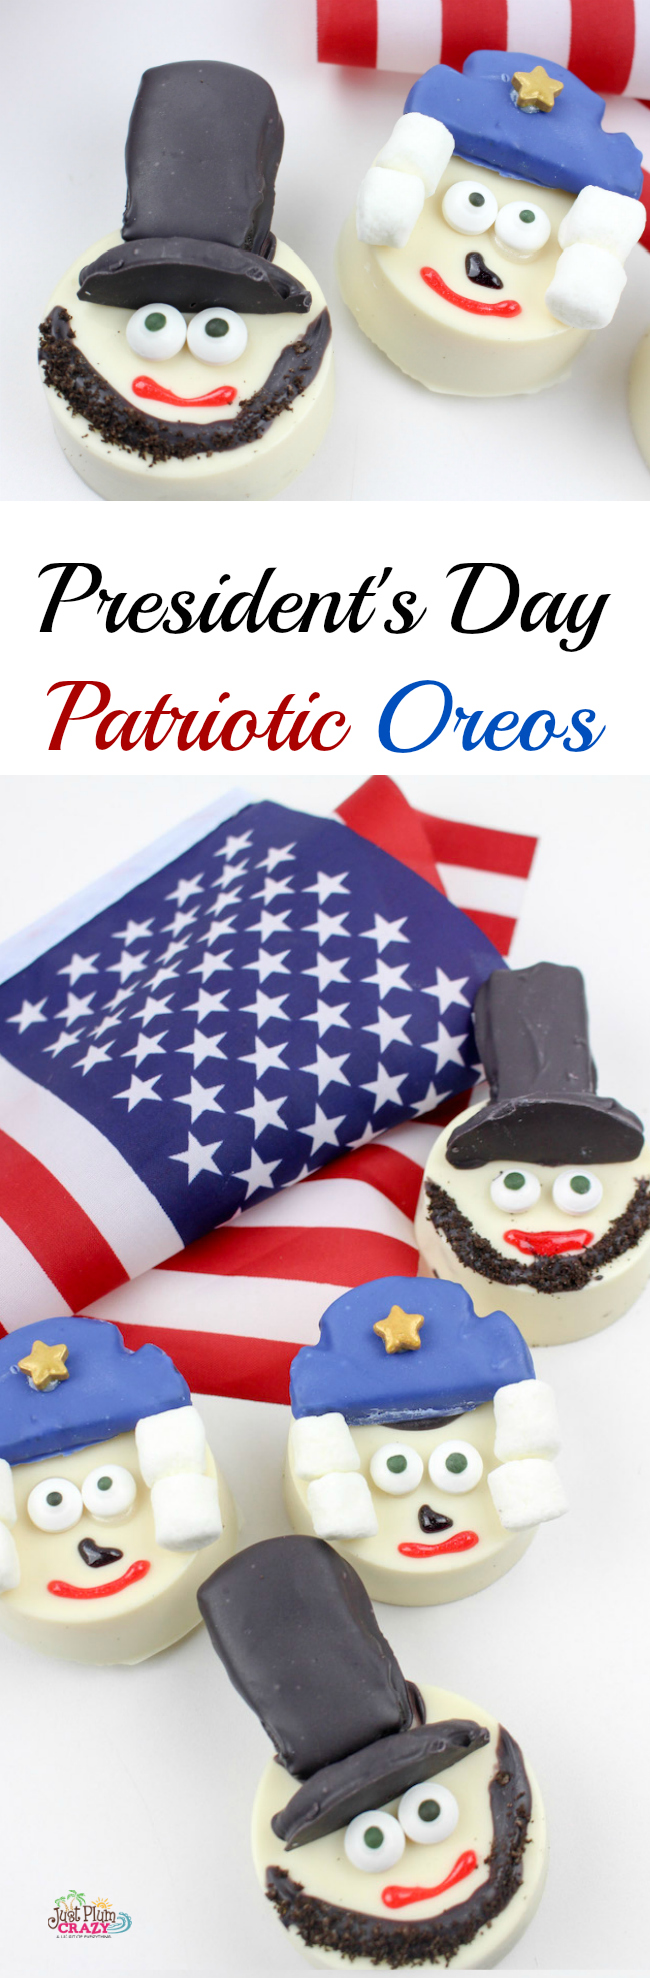 It's only fitting that we make something for President's Day with our President's Day Oreos Recipe which is also my mom's birthday!